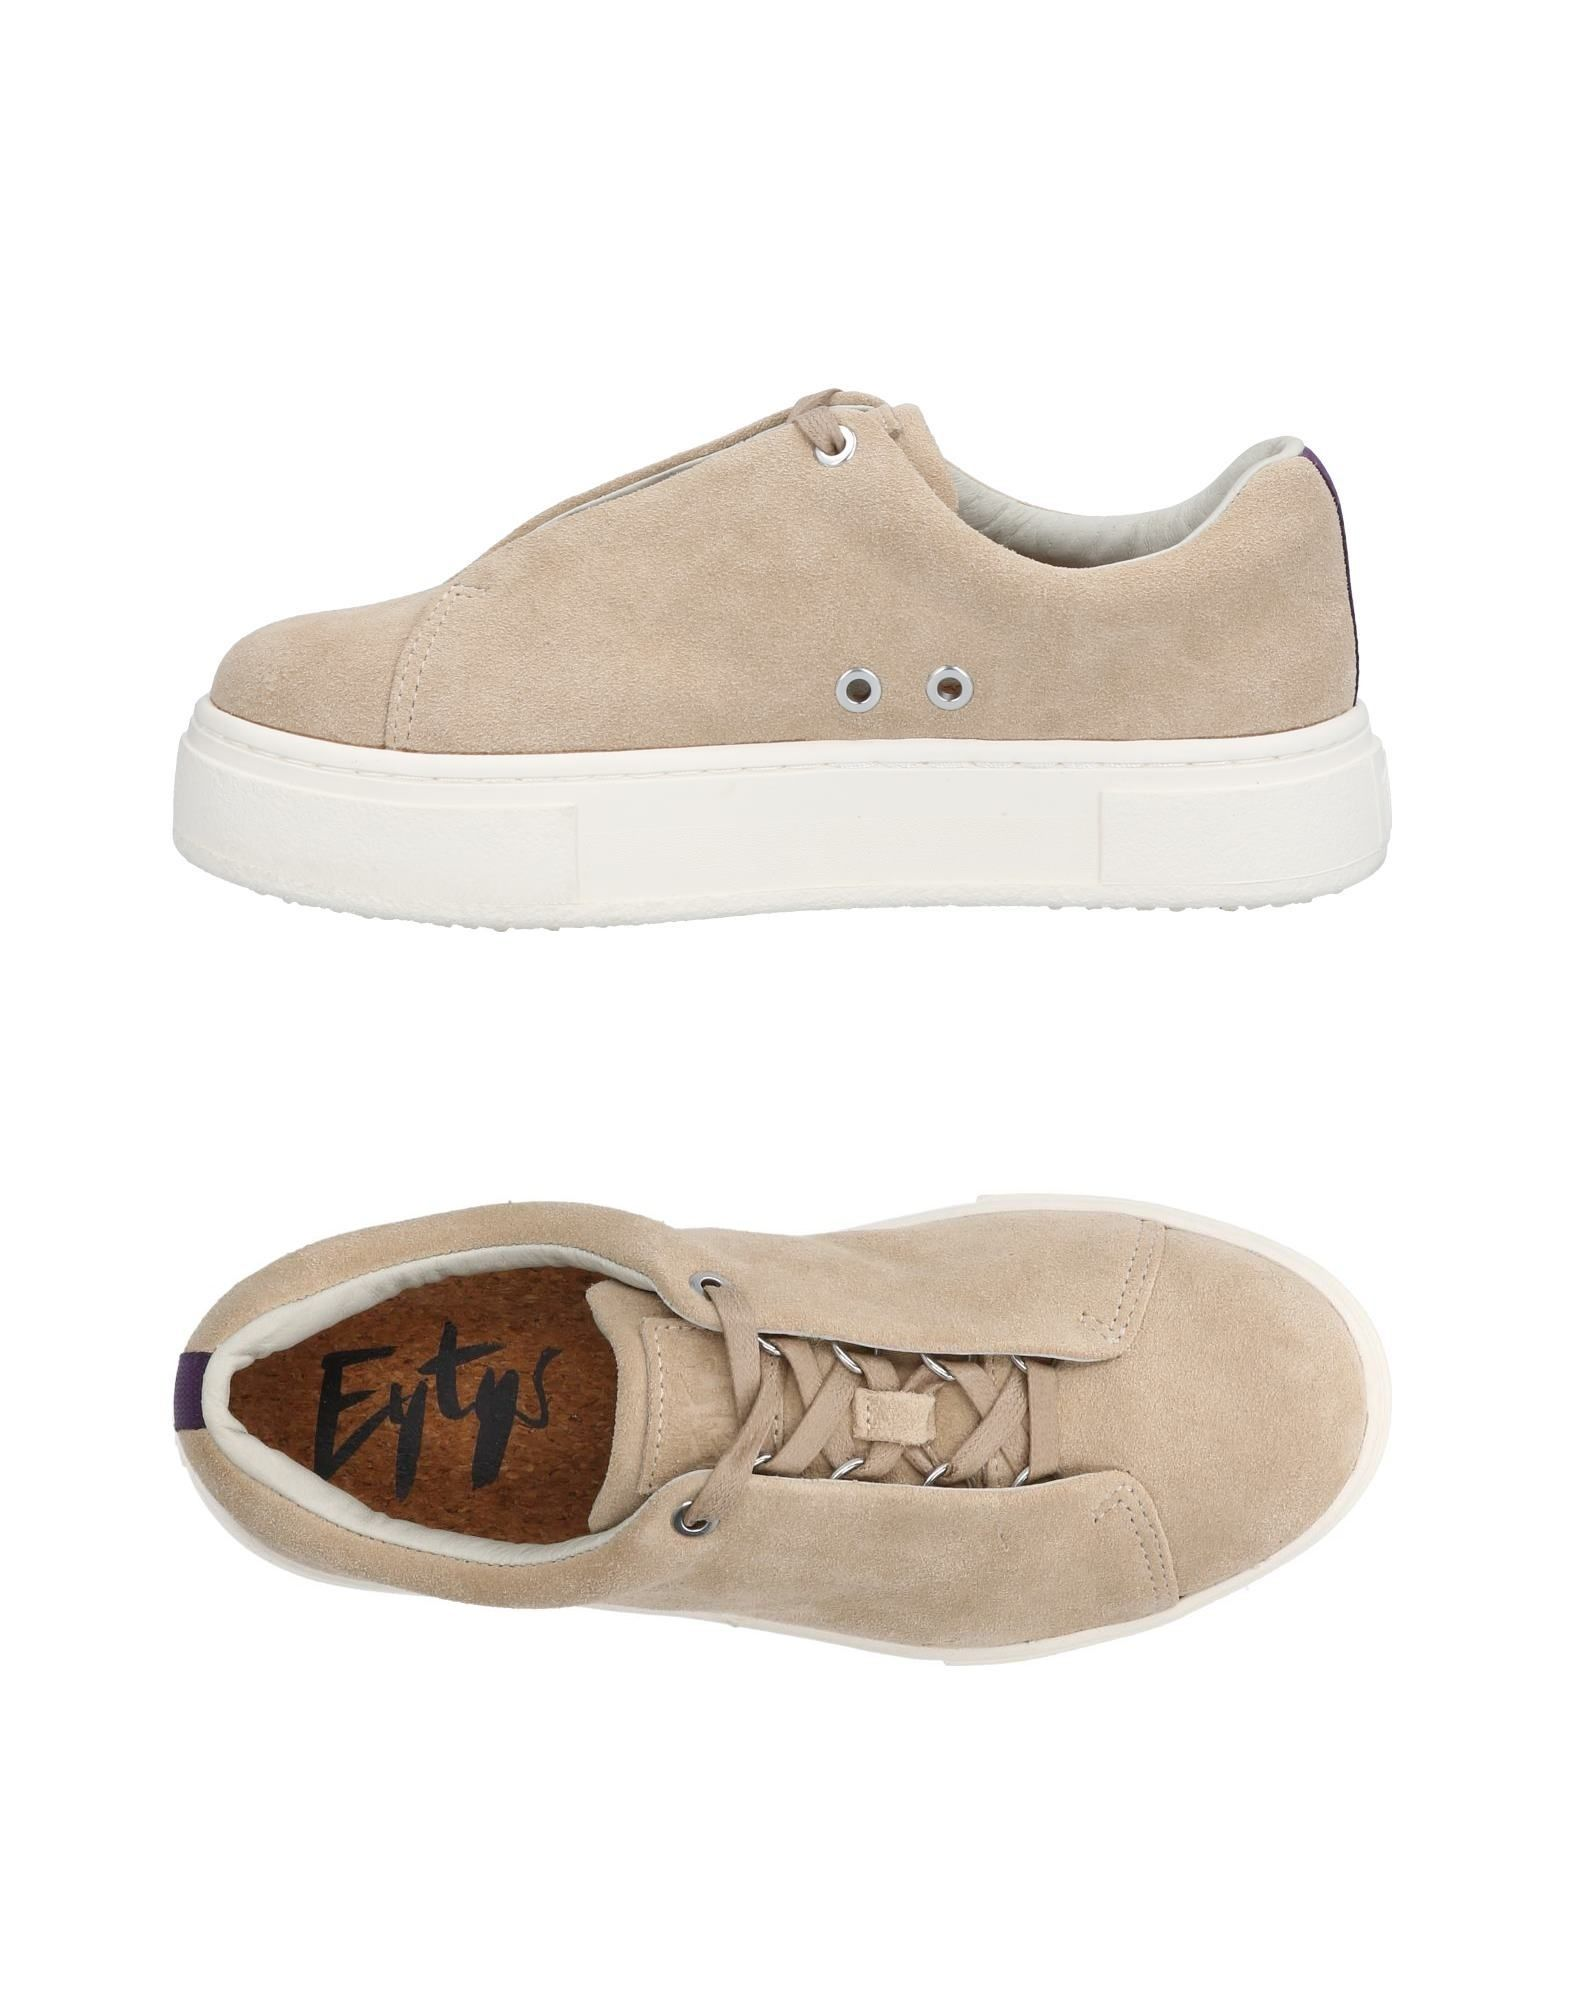 Sneakers Eytys Doja Suede - Donna - 11248684VC